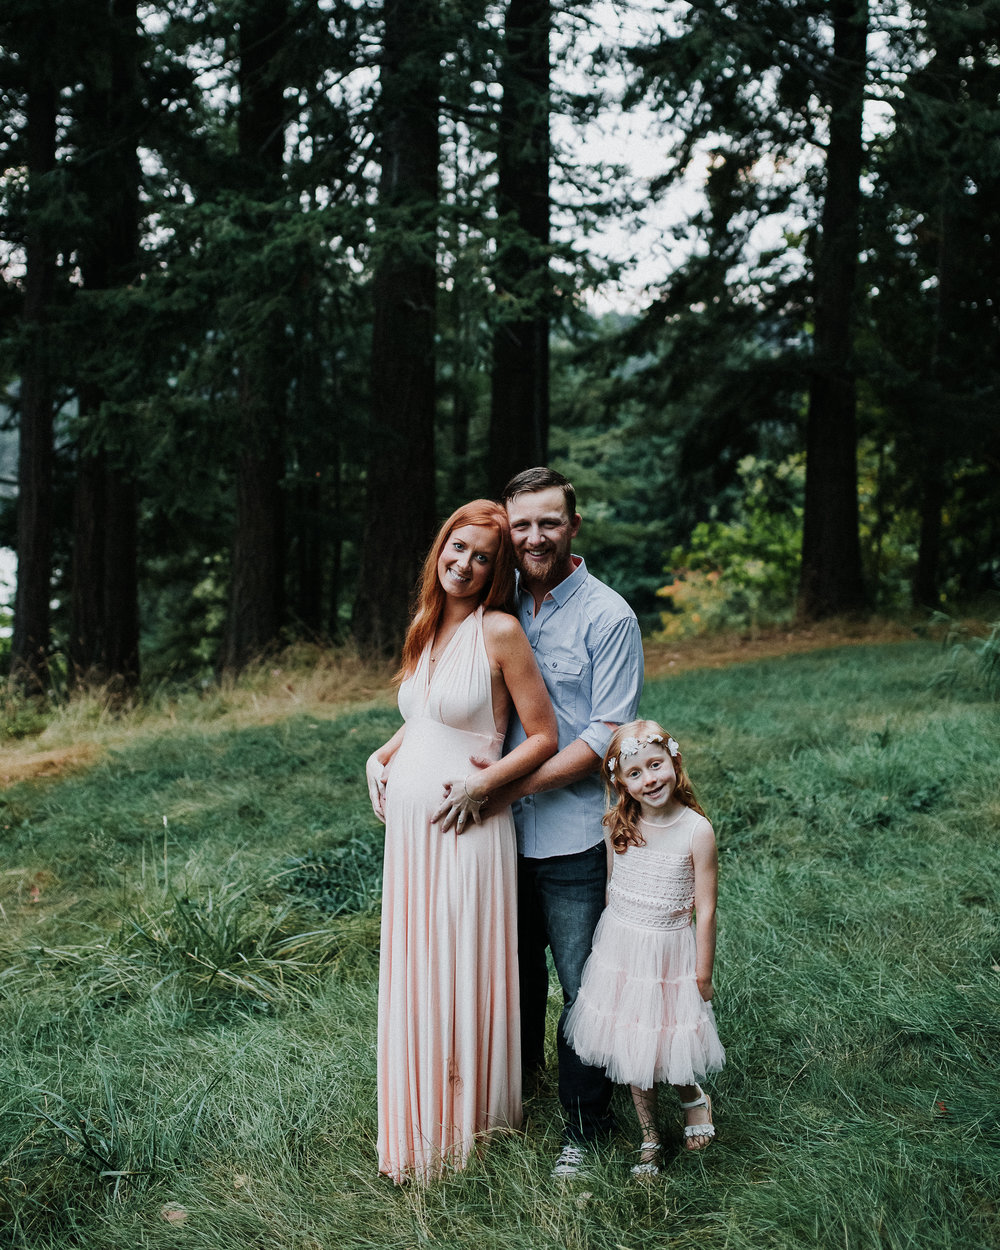 Maternity-Photographer-Bellingham-WA-Brianne-Bell-Photography-(Holly)